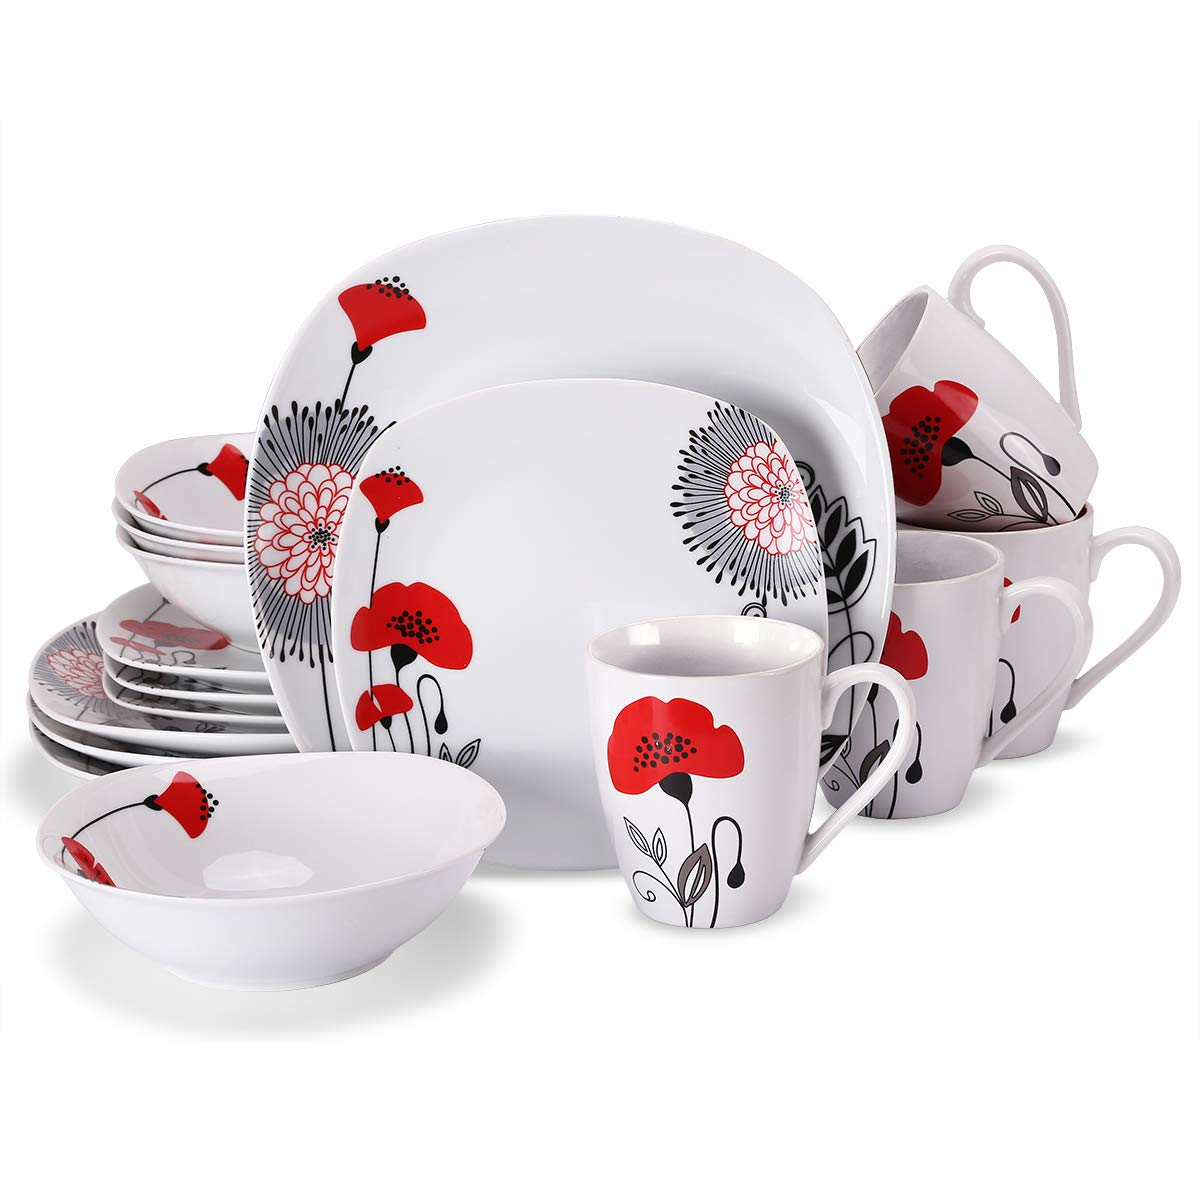 Doublewhale 16-Piece Dinnerware Set, Square Dinner Plates Dishes, Bowls, Dishes, Mugs Sets, Service for 4 - Red